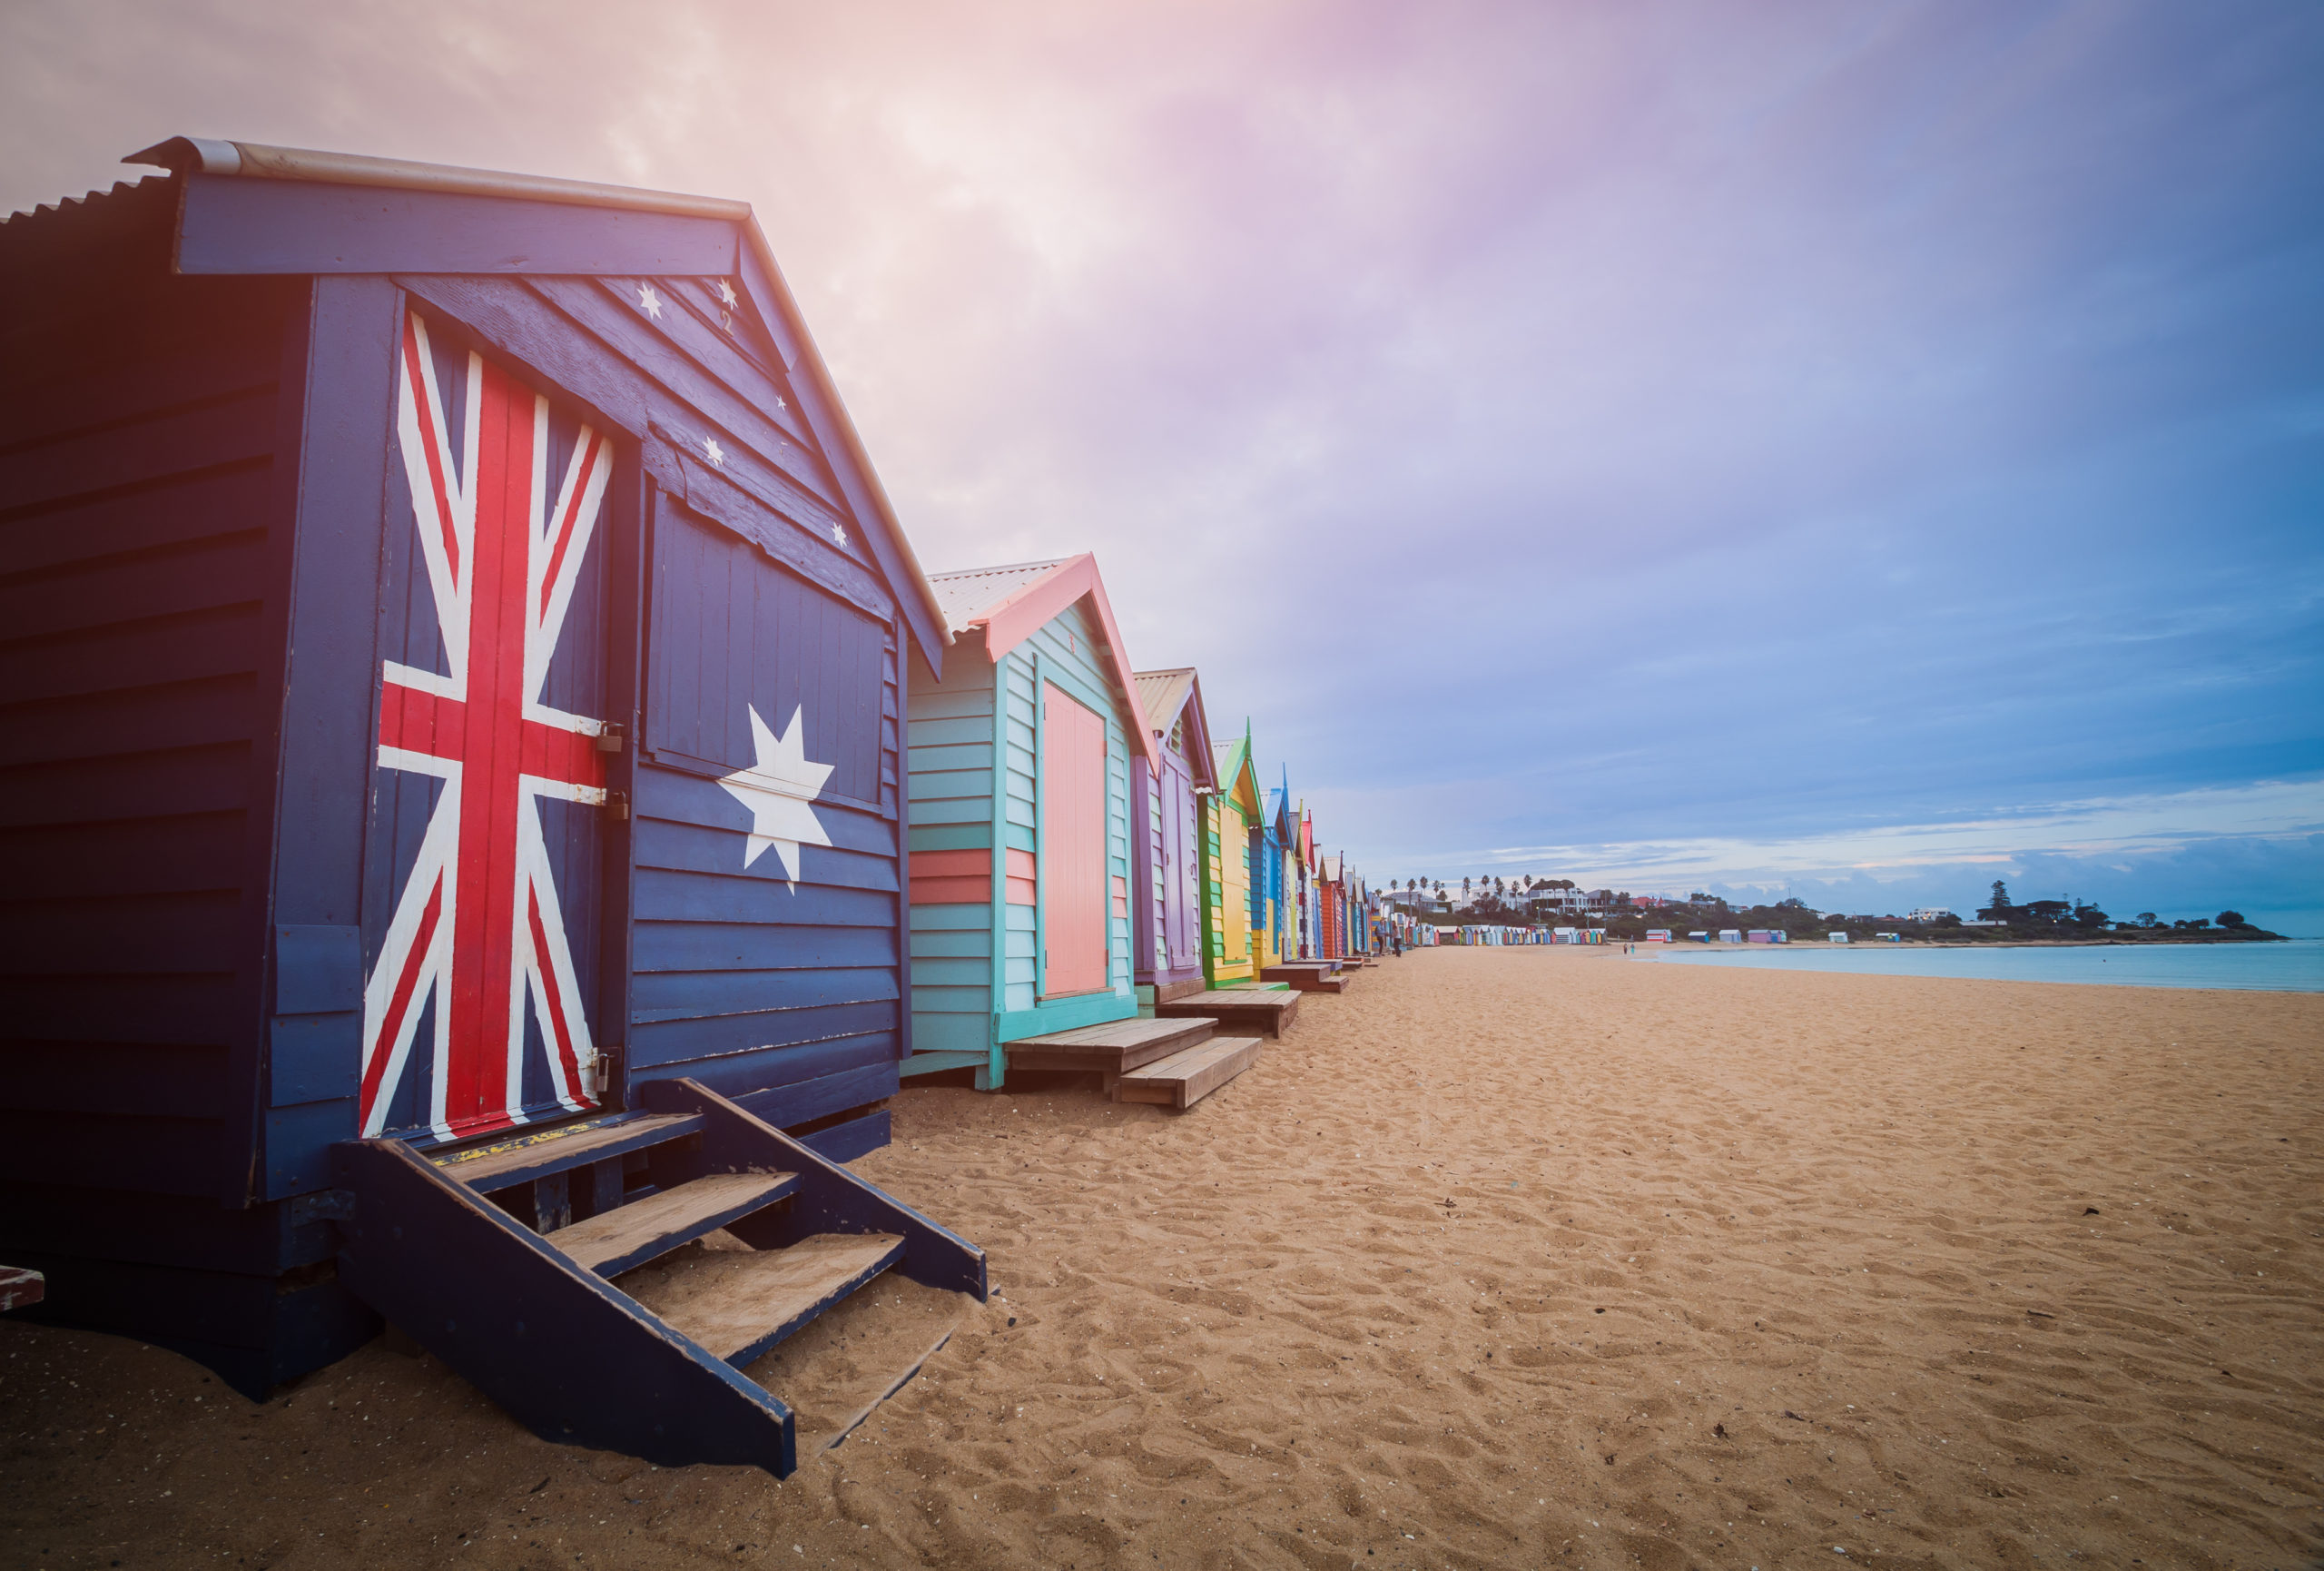 Brighton beach bathing boxes, Melbourne.